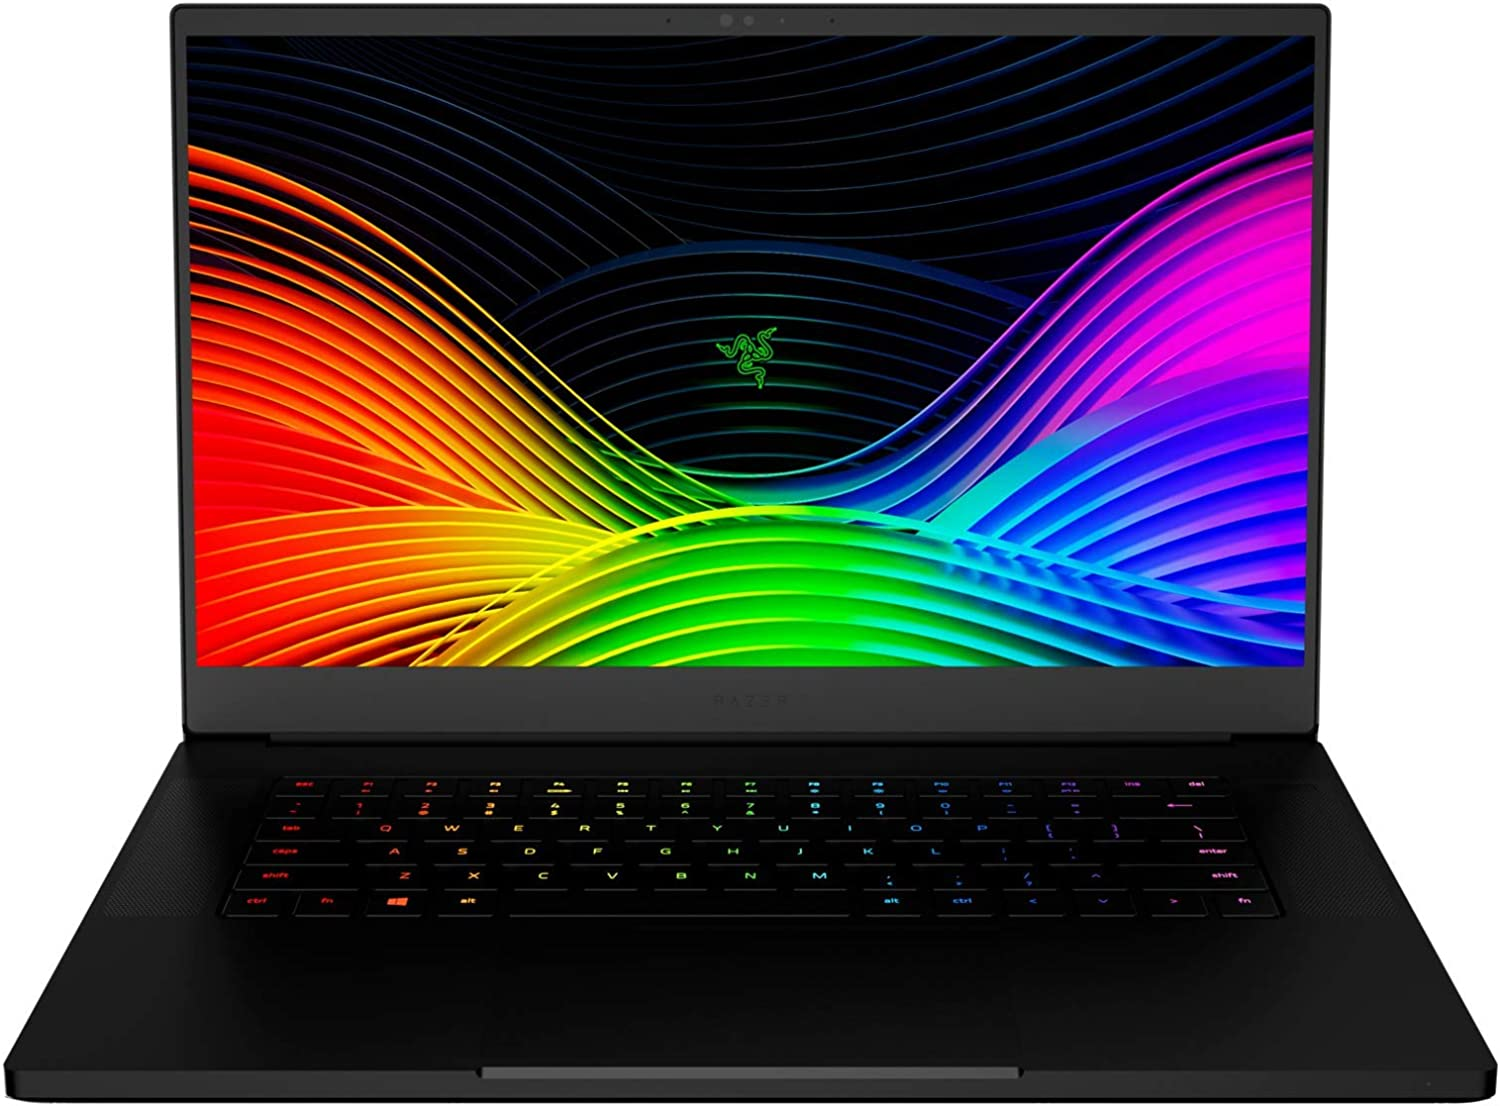 "Razer Blade 15 Gaming Laptop 2019: Intel Core i7-9750H 6 Core, NVIDIA GeForce RTX 2070 Max-Q, 15.6"" FHD 1080p 240Hz, 16GB RAM, 512GB SSD, CNC Aluminum, Chroma RGB Lighting, Thunderbolt 3"